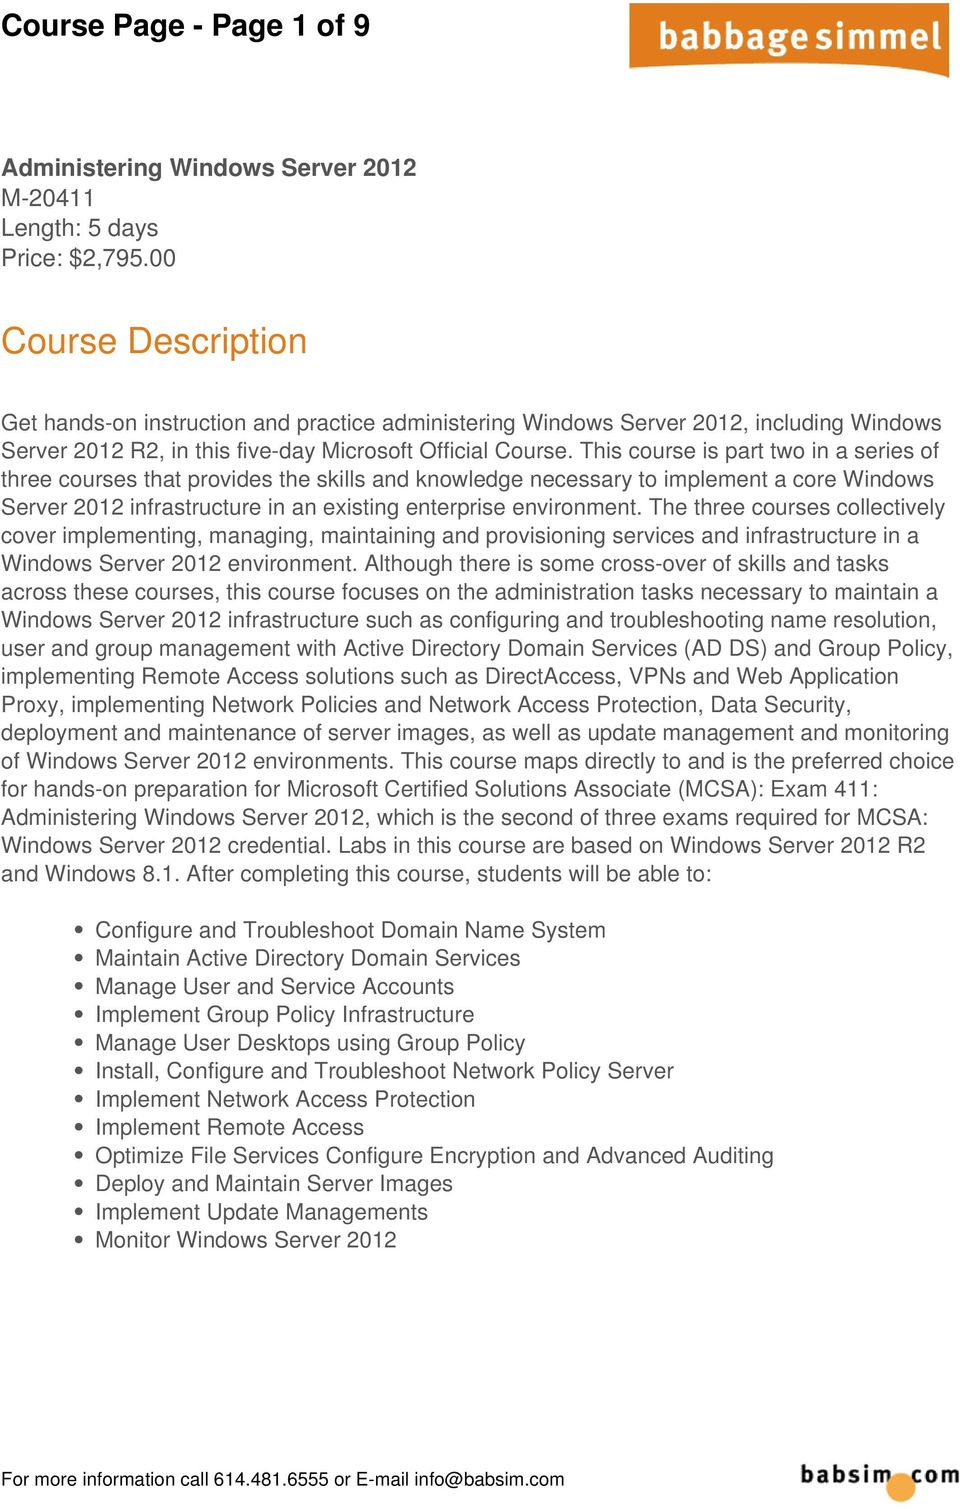 This course is part two in a series of three courses that provides the skills and knowledge necessary to implement a core Windows Server 2012 infrastructure in an existing enterprise environment.